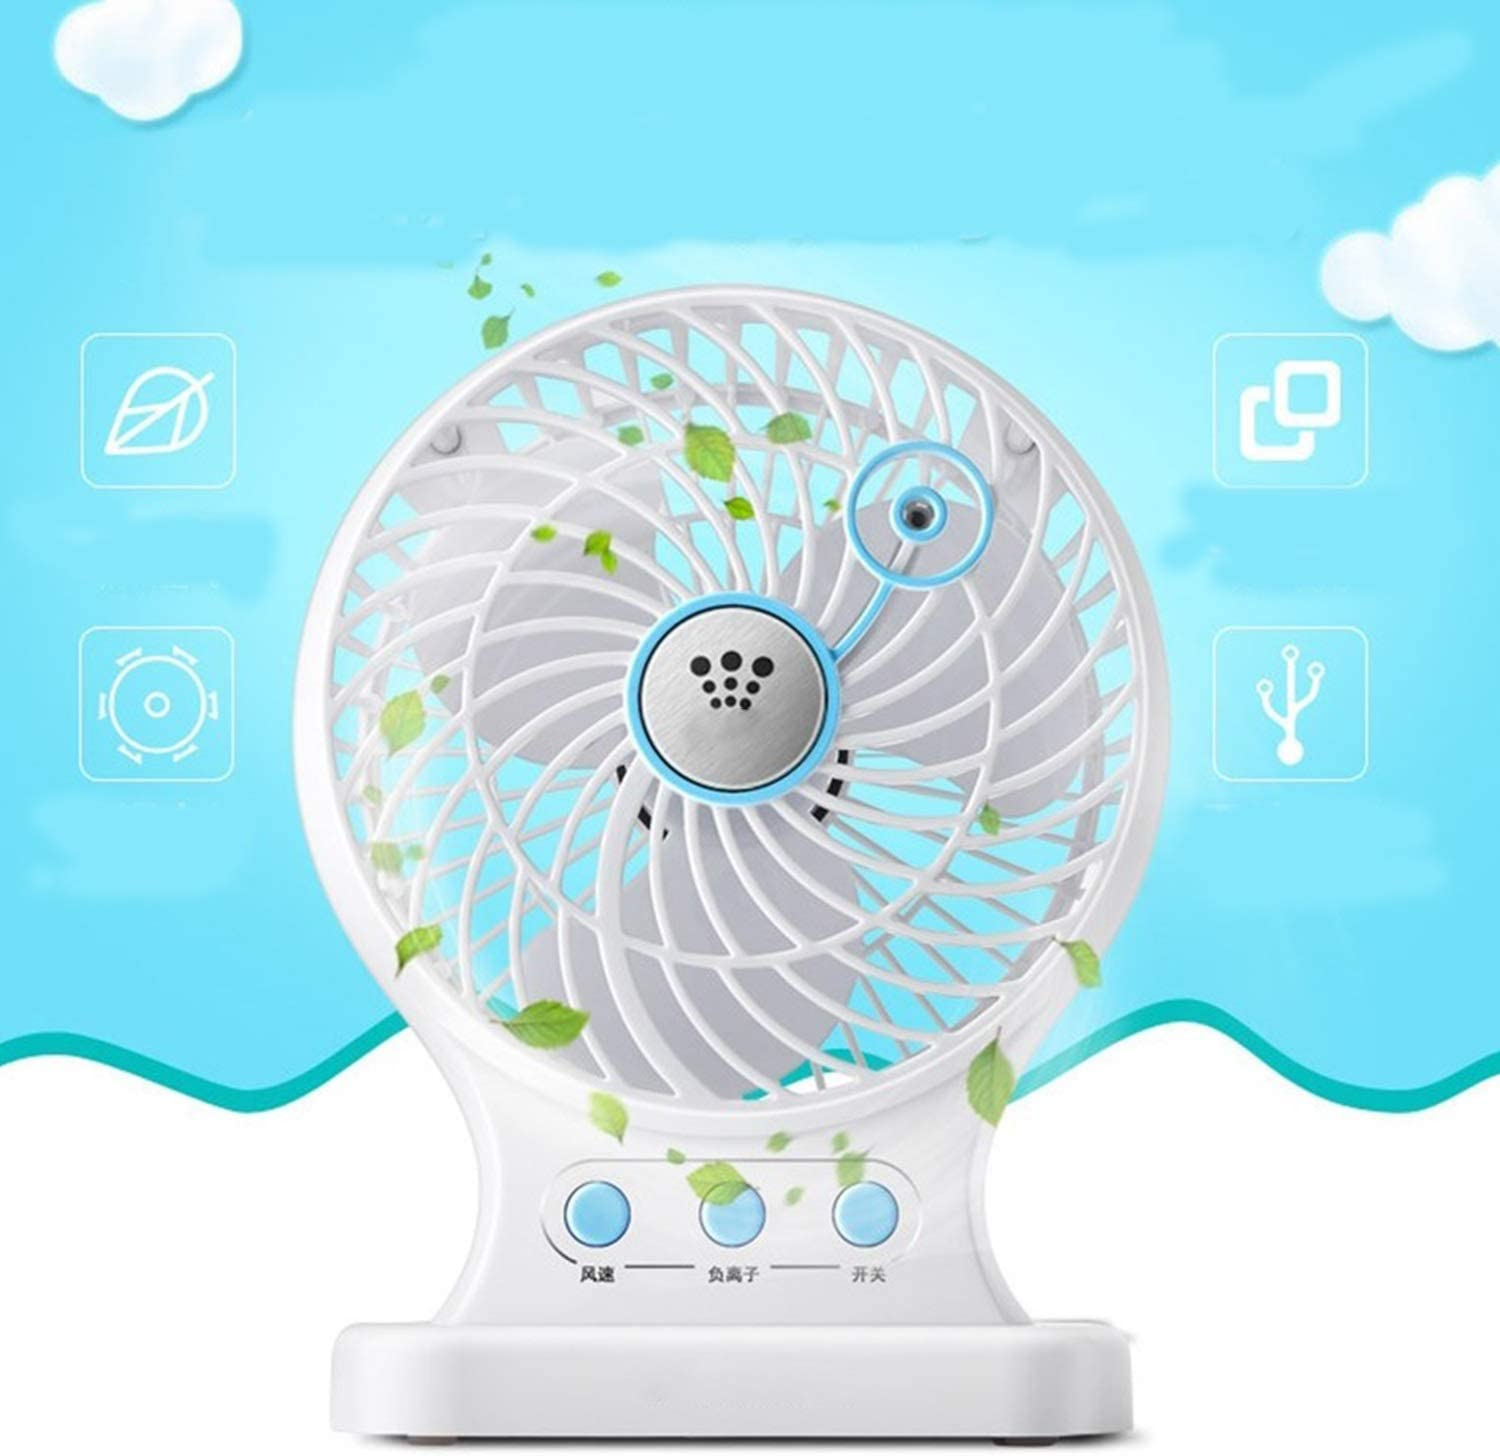 XIAOF-FEN USB Table Fan Mini 2 Gear Wind Speed Cooling Electric Fan Household Desktop 3 Leaf Round Fans Portable USB Fan Color : Pink